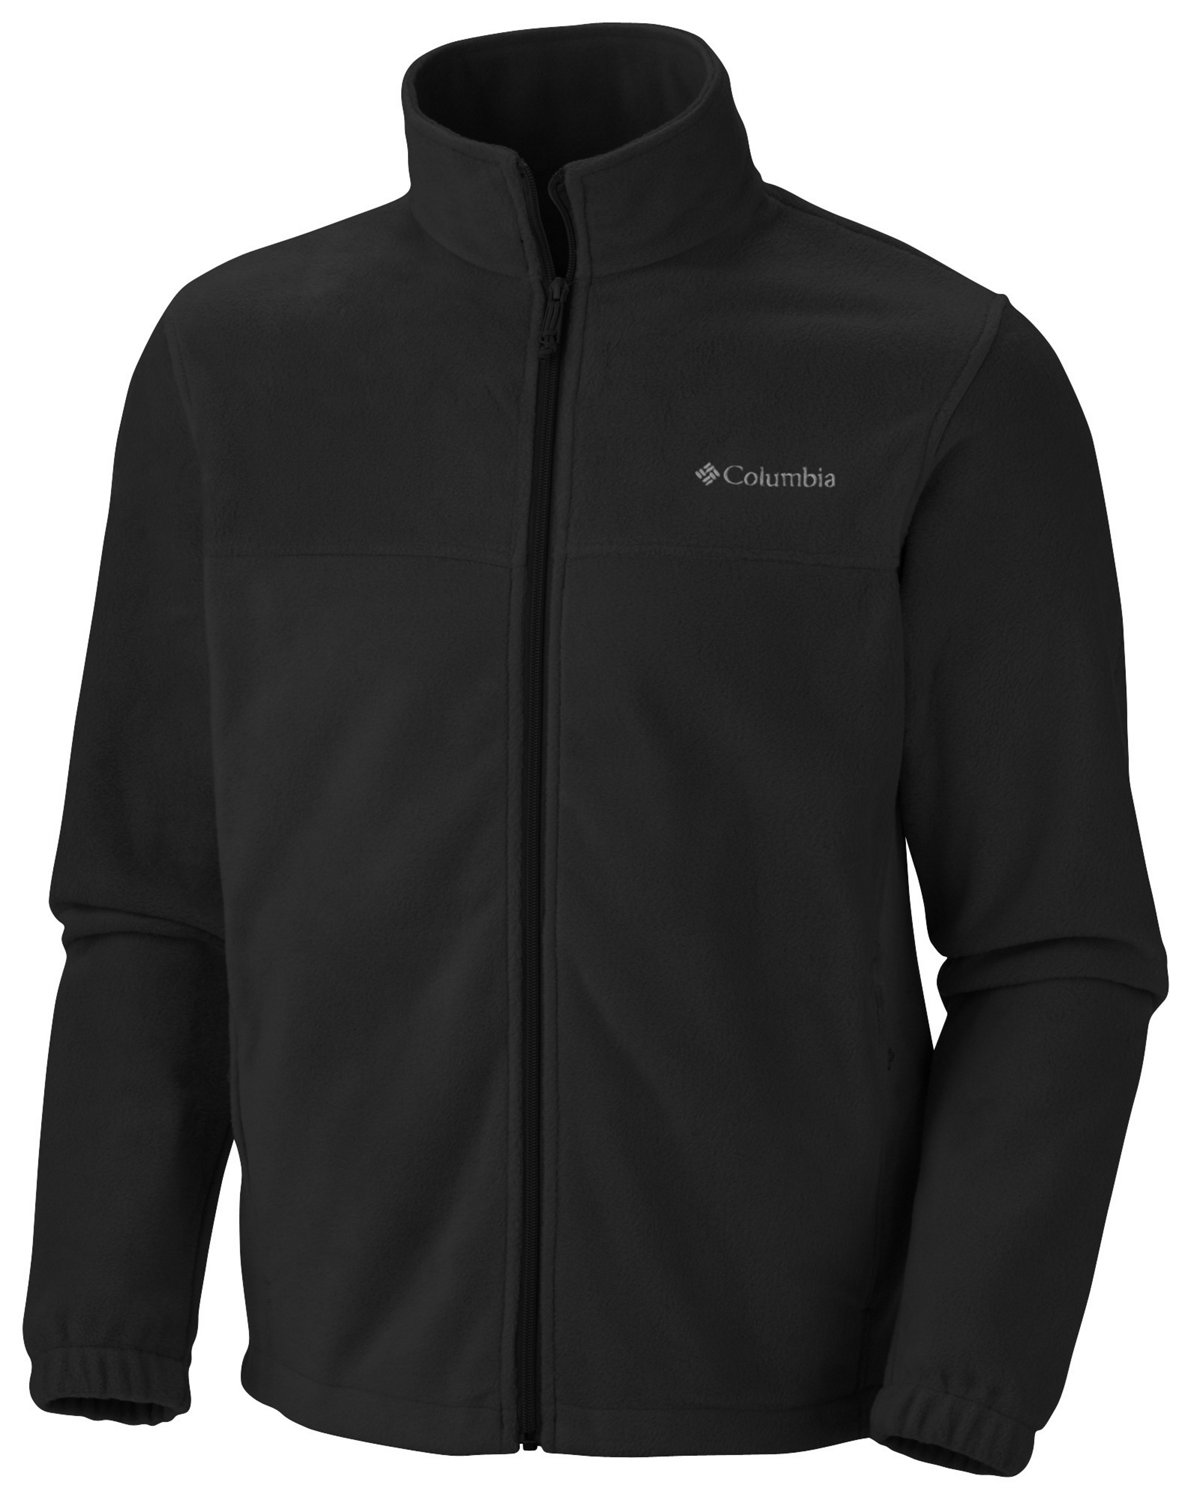 cc0c89816c69 Display product reviews for Columbia Sportswear Men s Steens Mountain Jacket